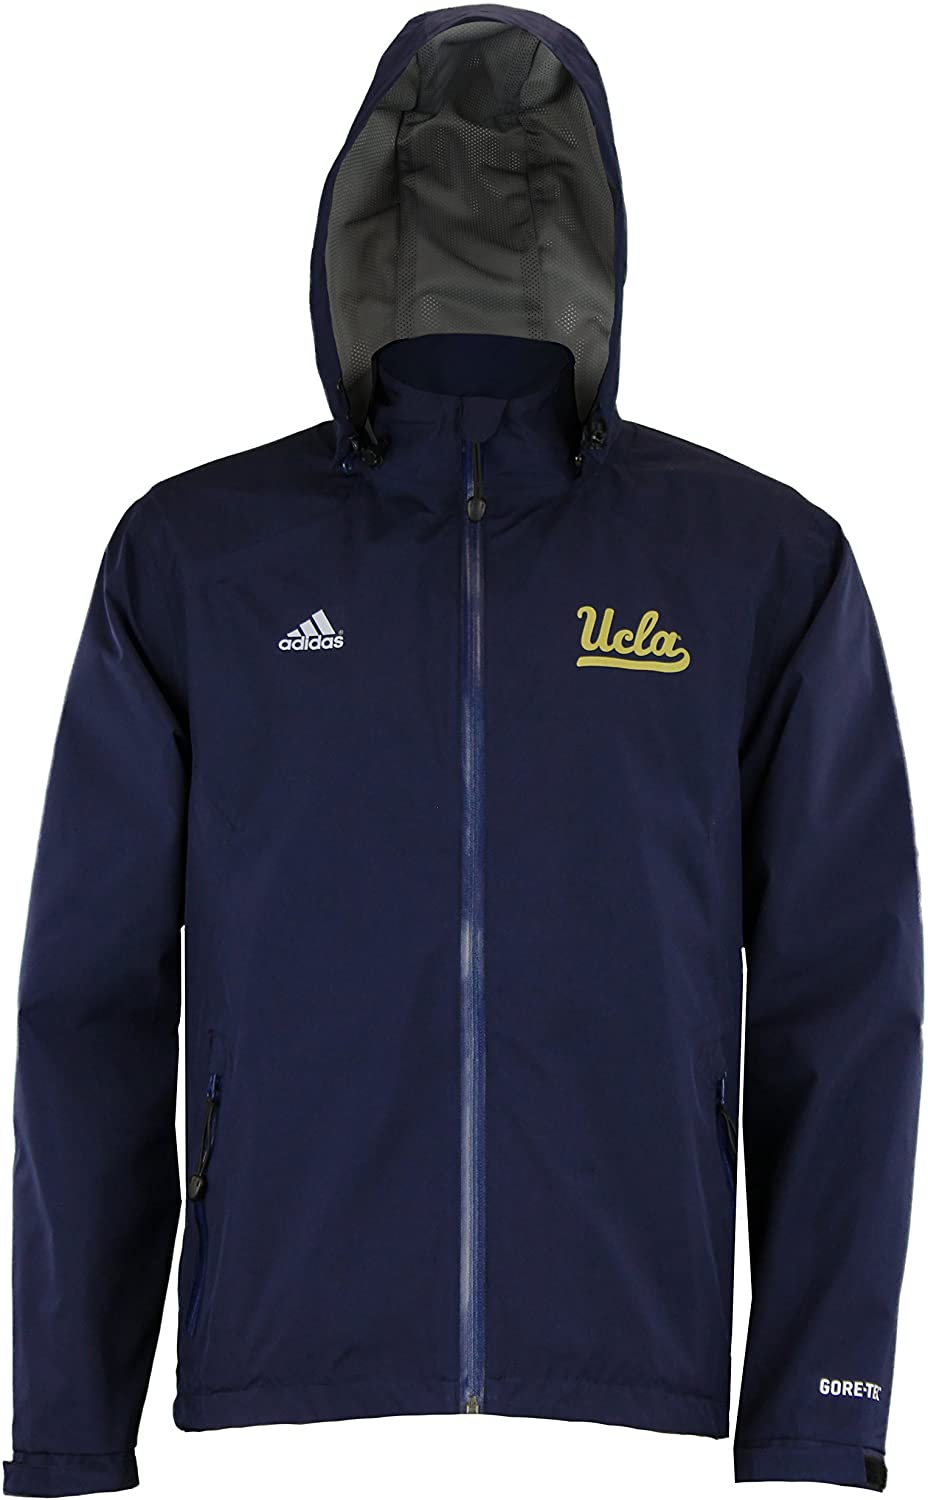 adidas UCLA Bruins Men's Gore-Tex Full Zip Jacket, Navy